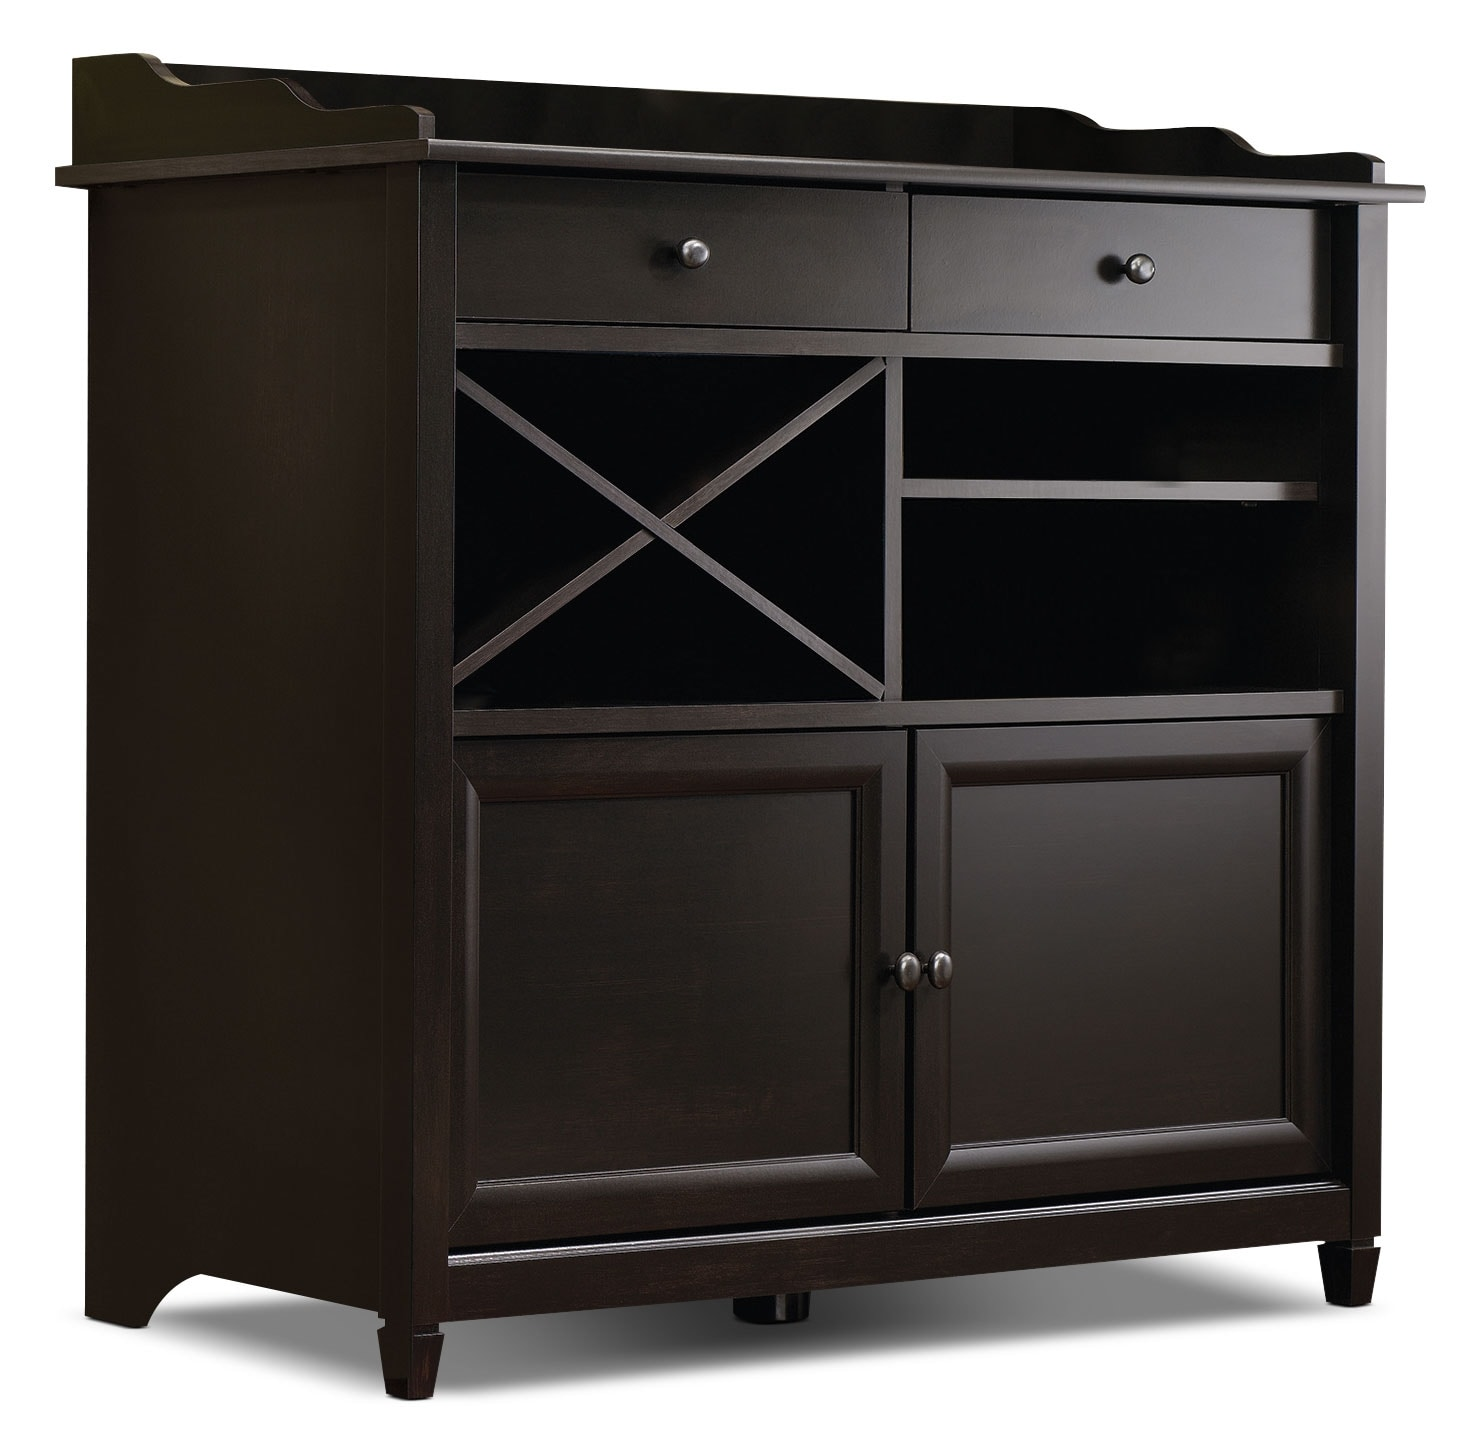 Edge Water Accent Cabinet with Wine Storage – Estate Black